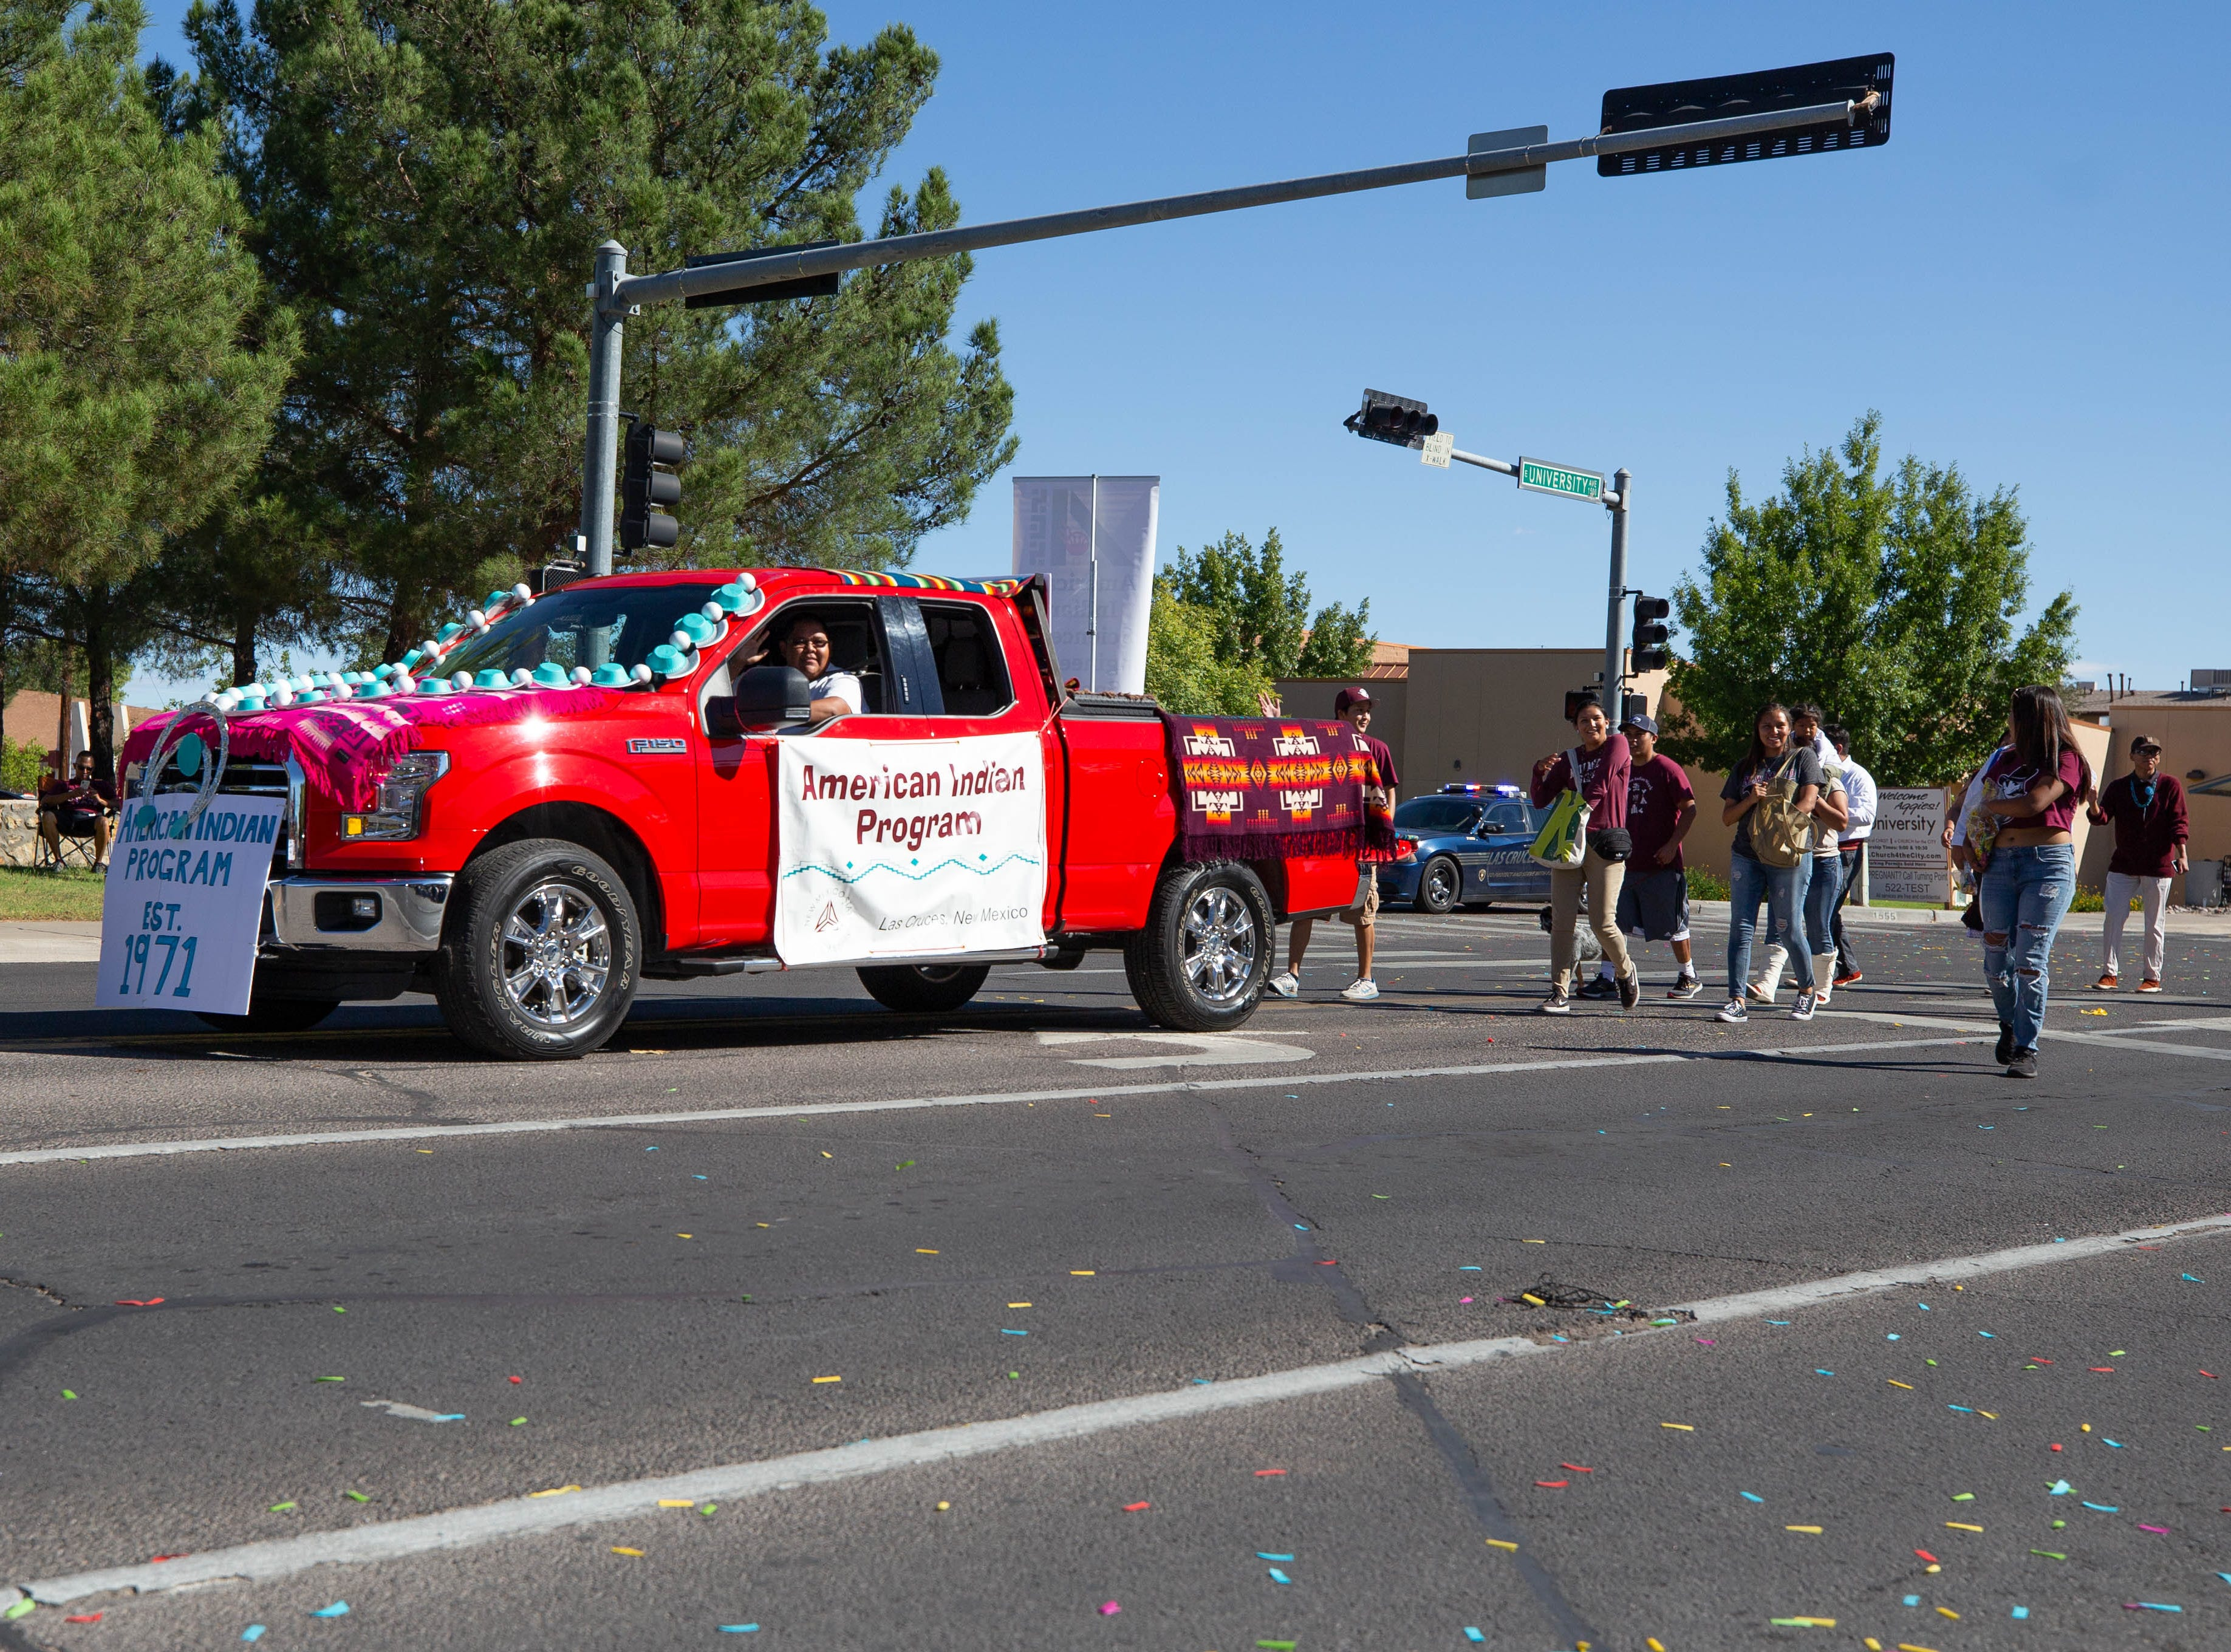 The American Indian program float at the NMSU Homecoming Parade on October 6, 2018.